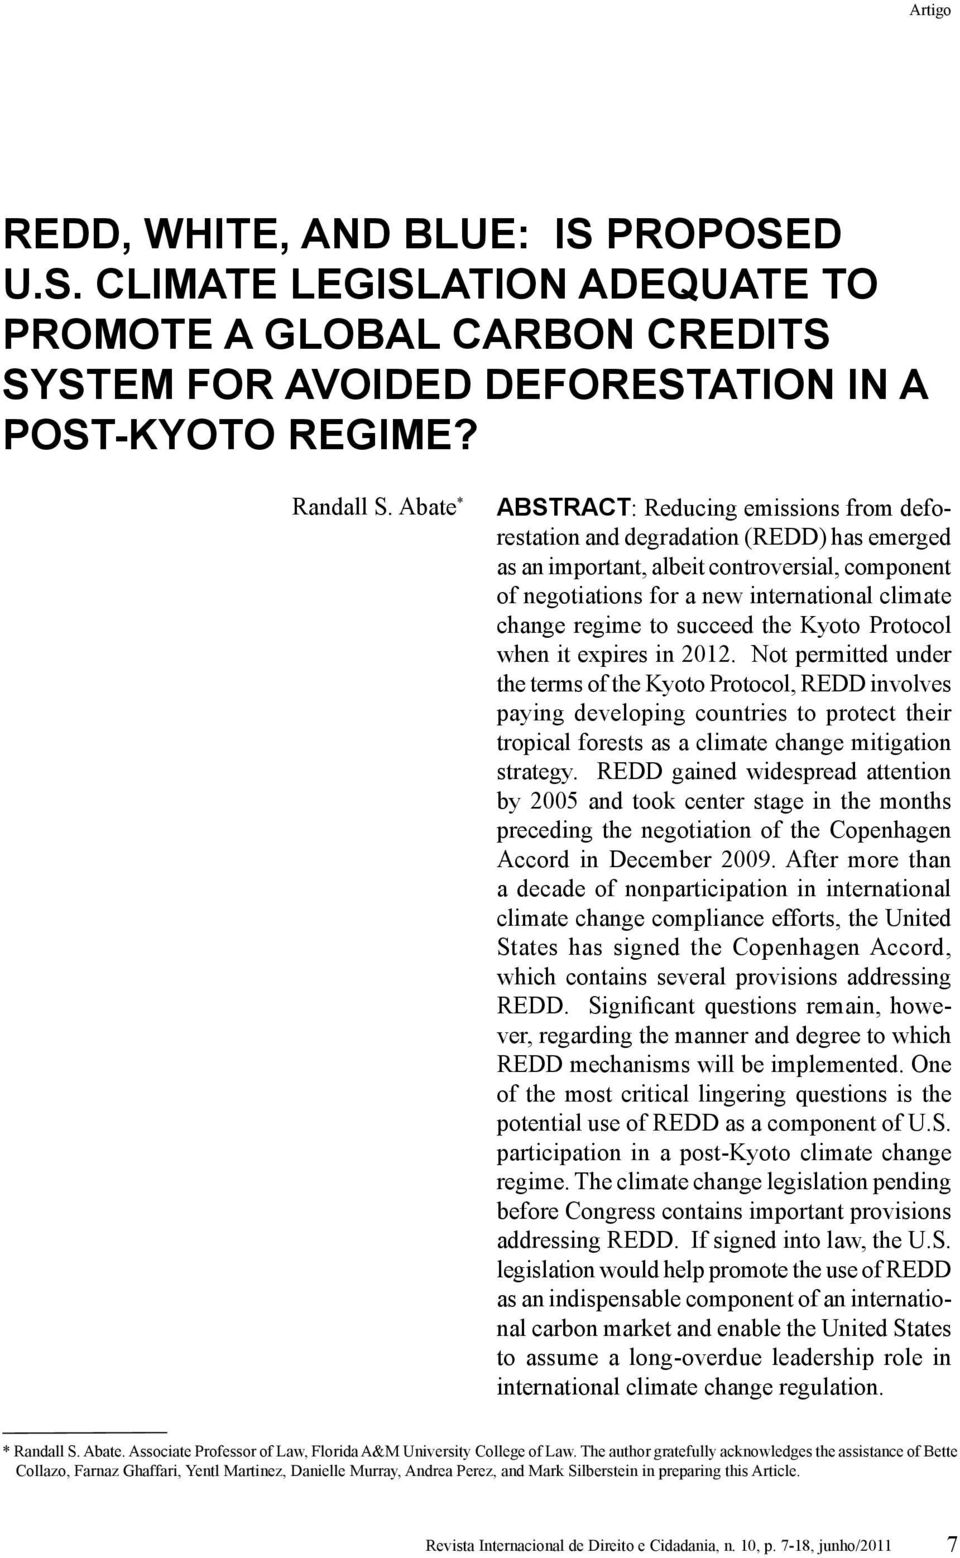 Abate * ABSTRACT: Reducing emissions from deforestation and degradation (REDD) has emerged as an important, albeit controversial, component of negotiations for a new international climate change